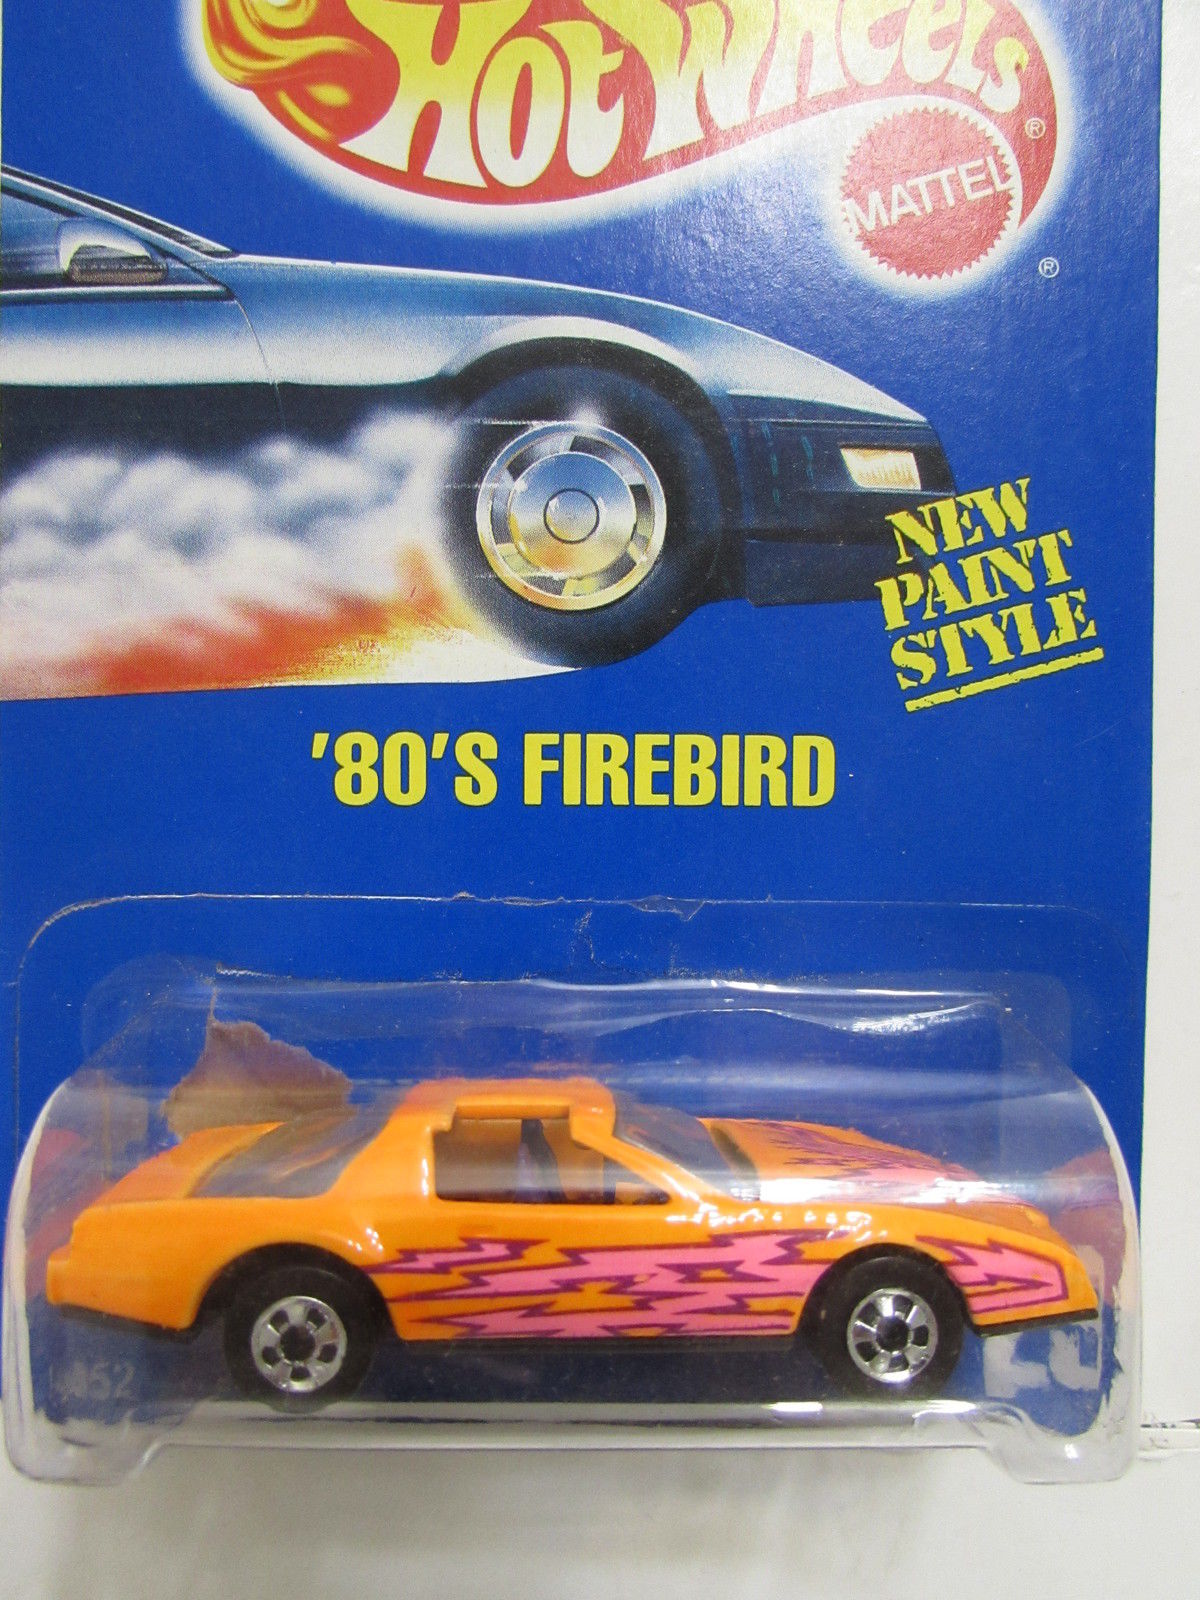 HOT WHEELS 1991 BLUE CARD 80's FIREBIRD #167 NEW PAINT STYLE